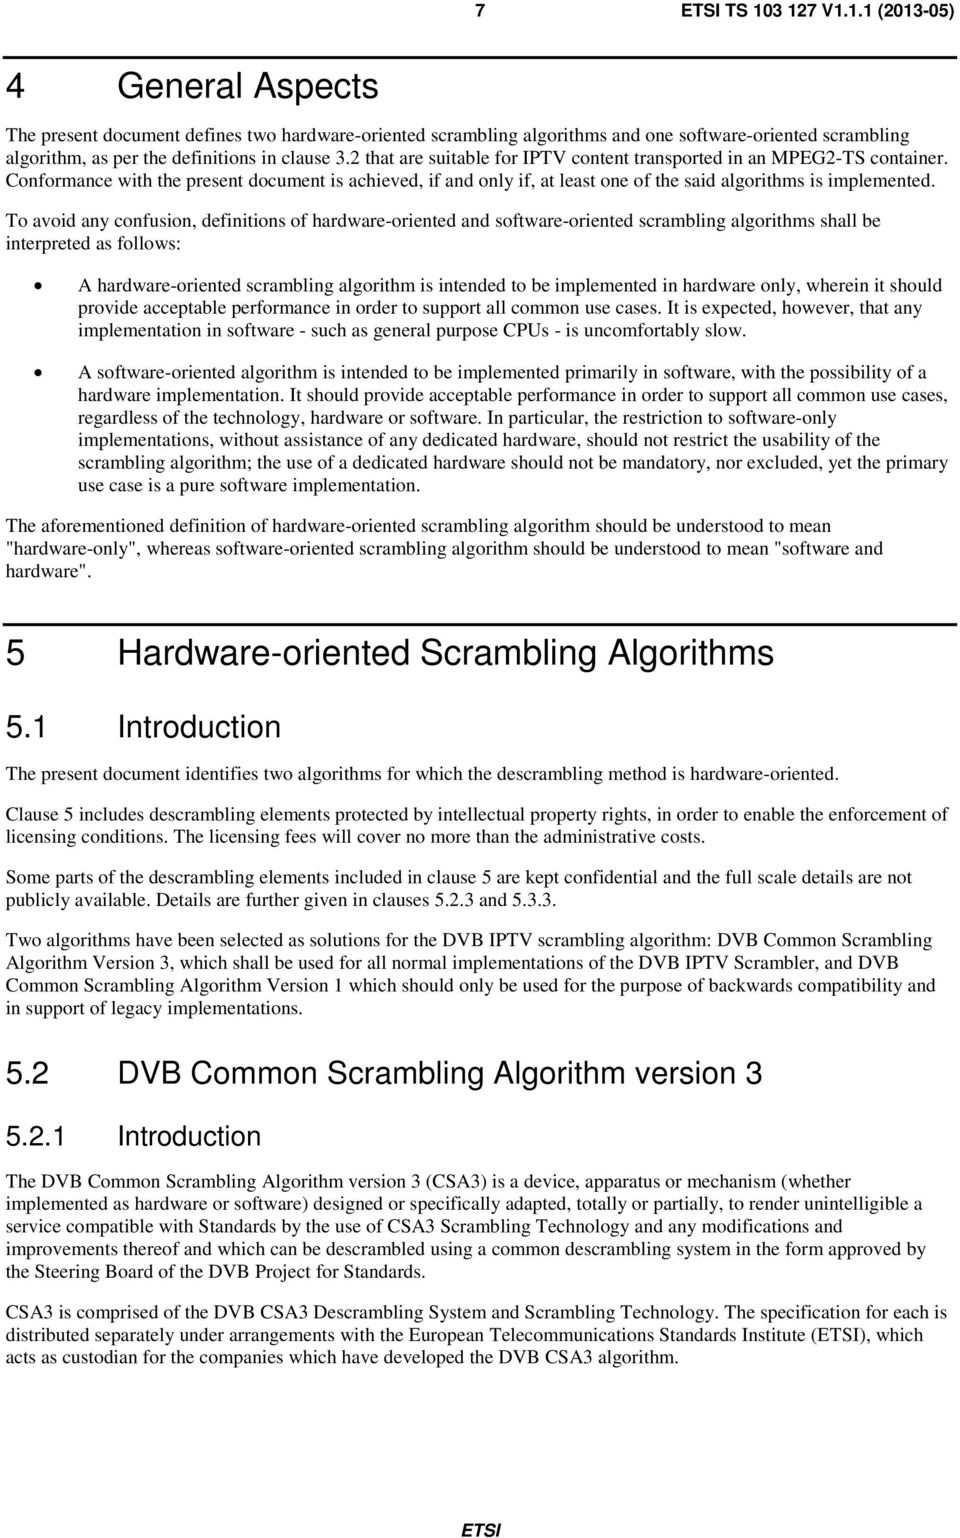 To avoid any confusion, definitions of hardware-oriented and software-oriented scrambling algorithms shall be interpreted as follows: A hardware-oriented scrambling algorithm is intended to be